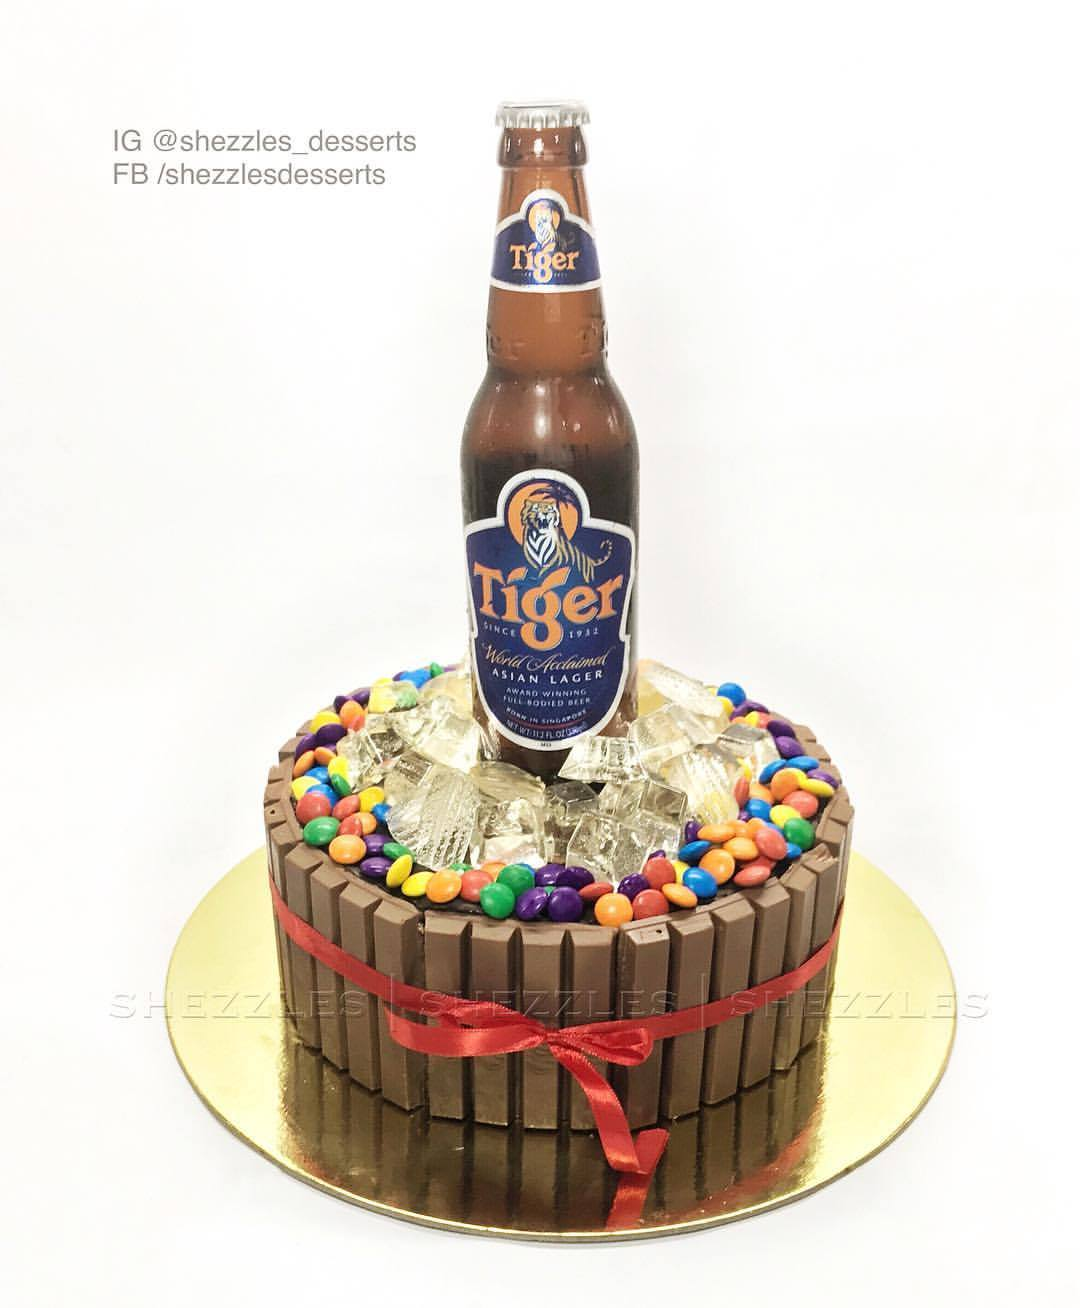 Pleasing Shezzles Cakes And Pastries Tiger Beer Kit Kat Cake Funny Birthday Cards Online Alyptdamsfinfo